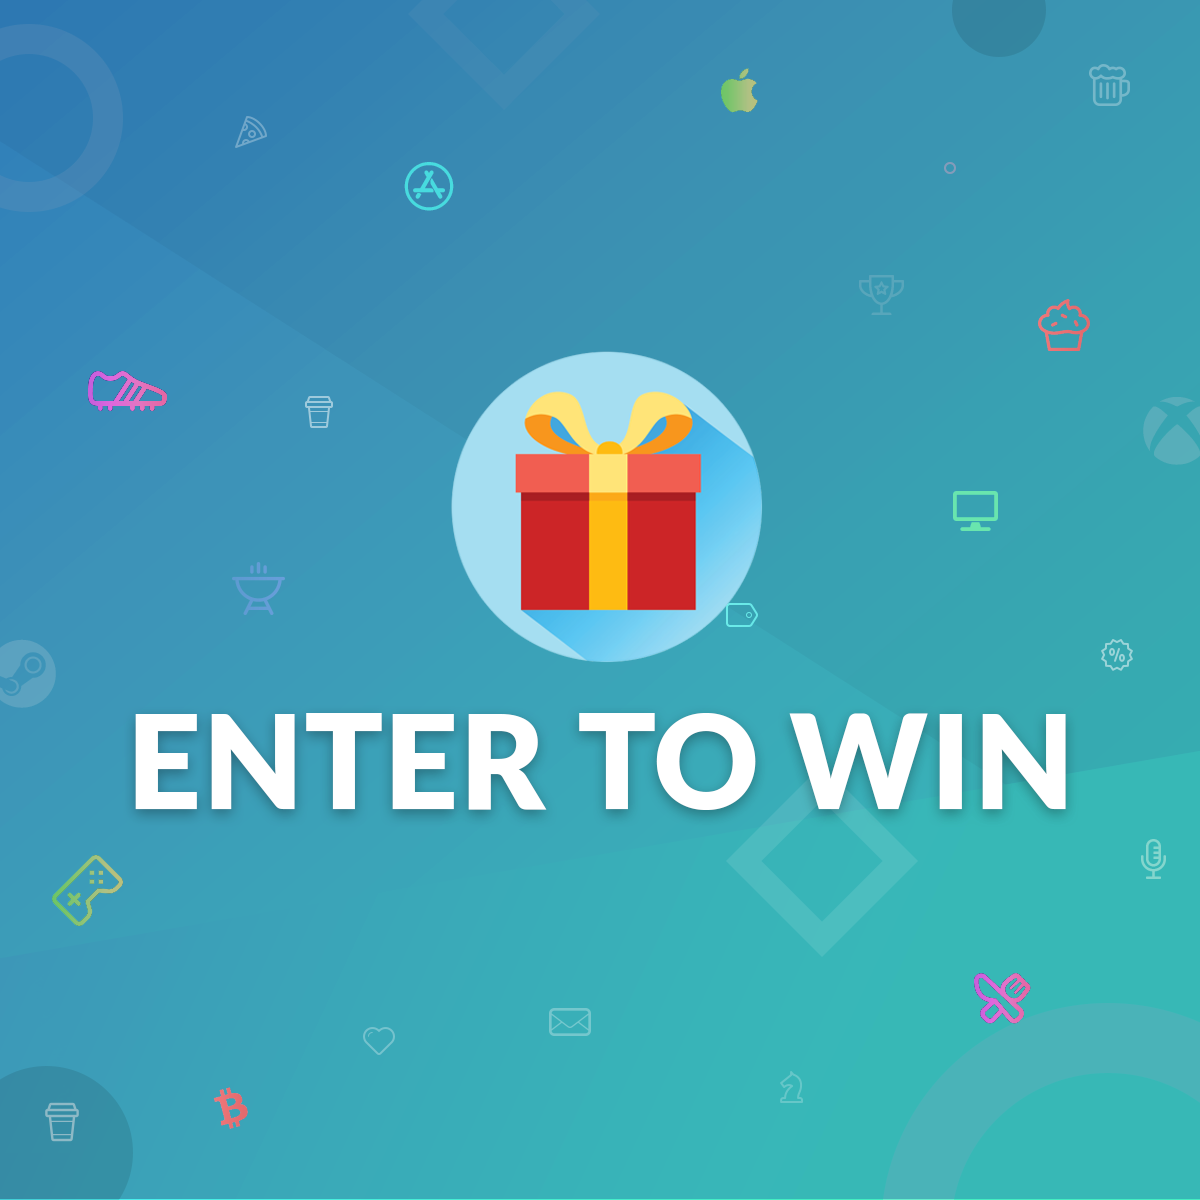 Amazon Giftcard giveaway: $200 (x1), $25 (x4), $5 (x39) = 44 winners. (02-13-2019, International) Giveaway Image